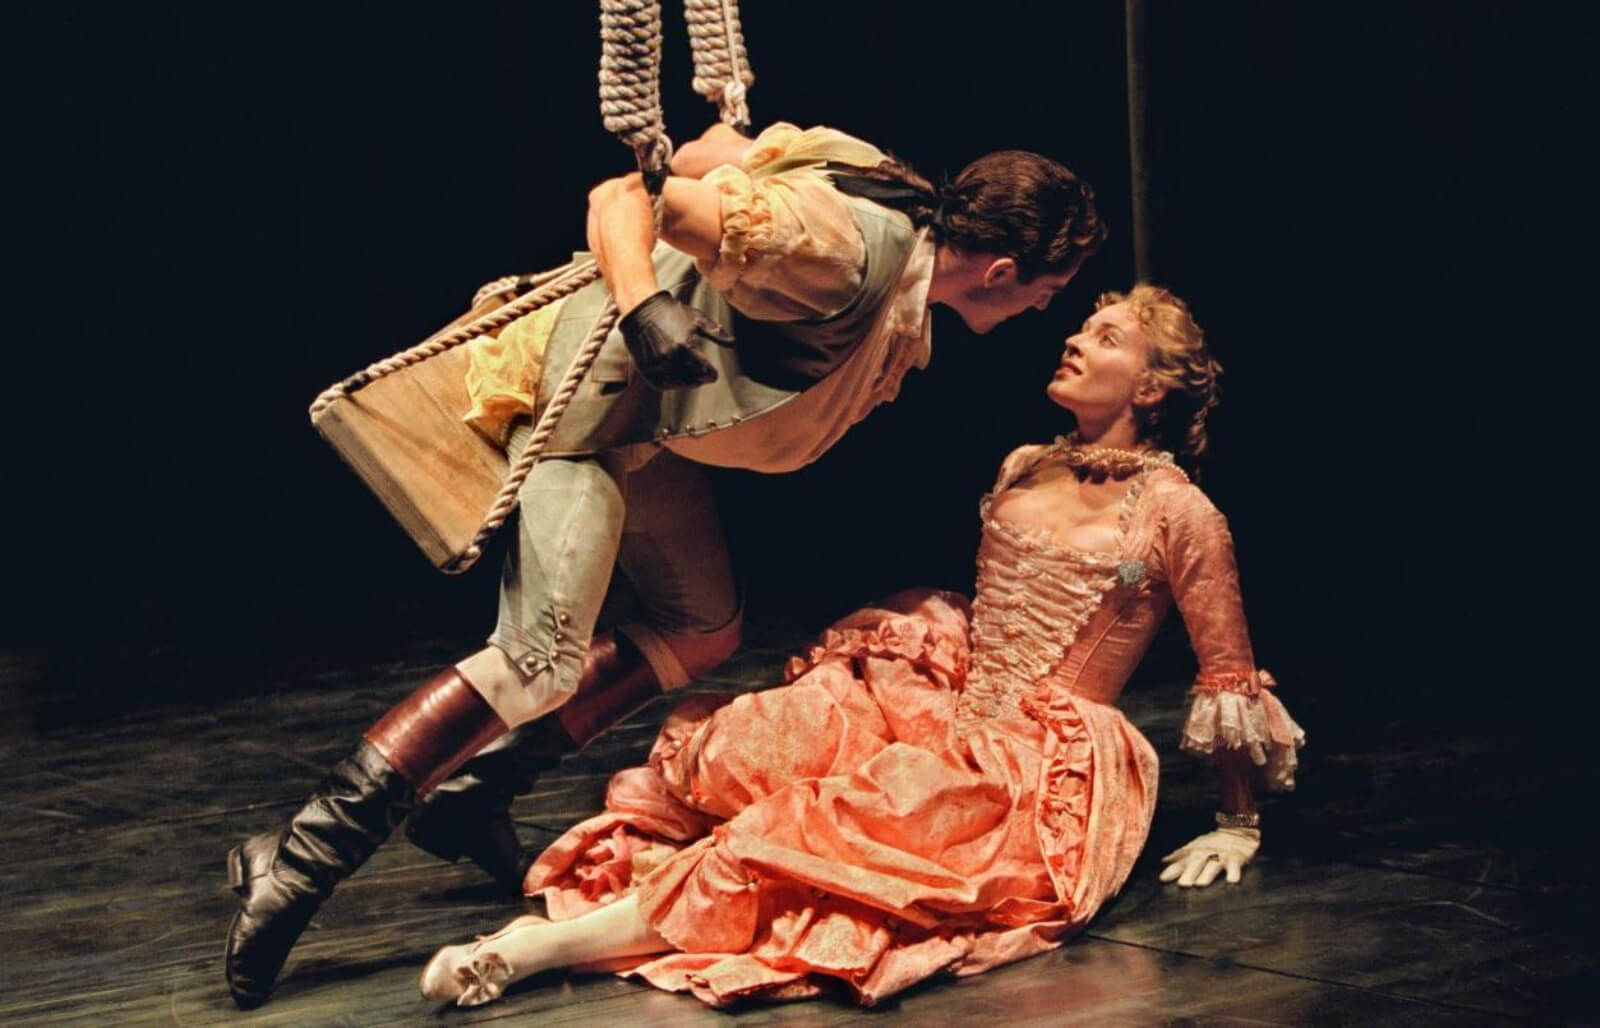 """Seán Martin Hingston and Stephanie Michels in """"Swinging"""" from Contact. He is leaning in for a kiss, she is on the ground. They are both dressed in costumes from the famous Fragonard Painting The Swing."""